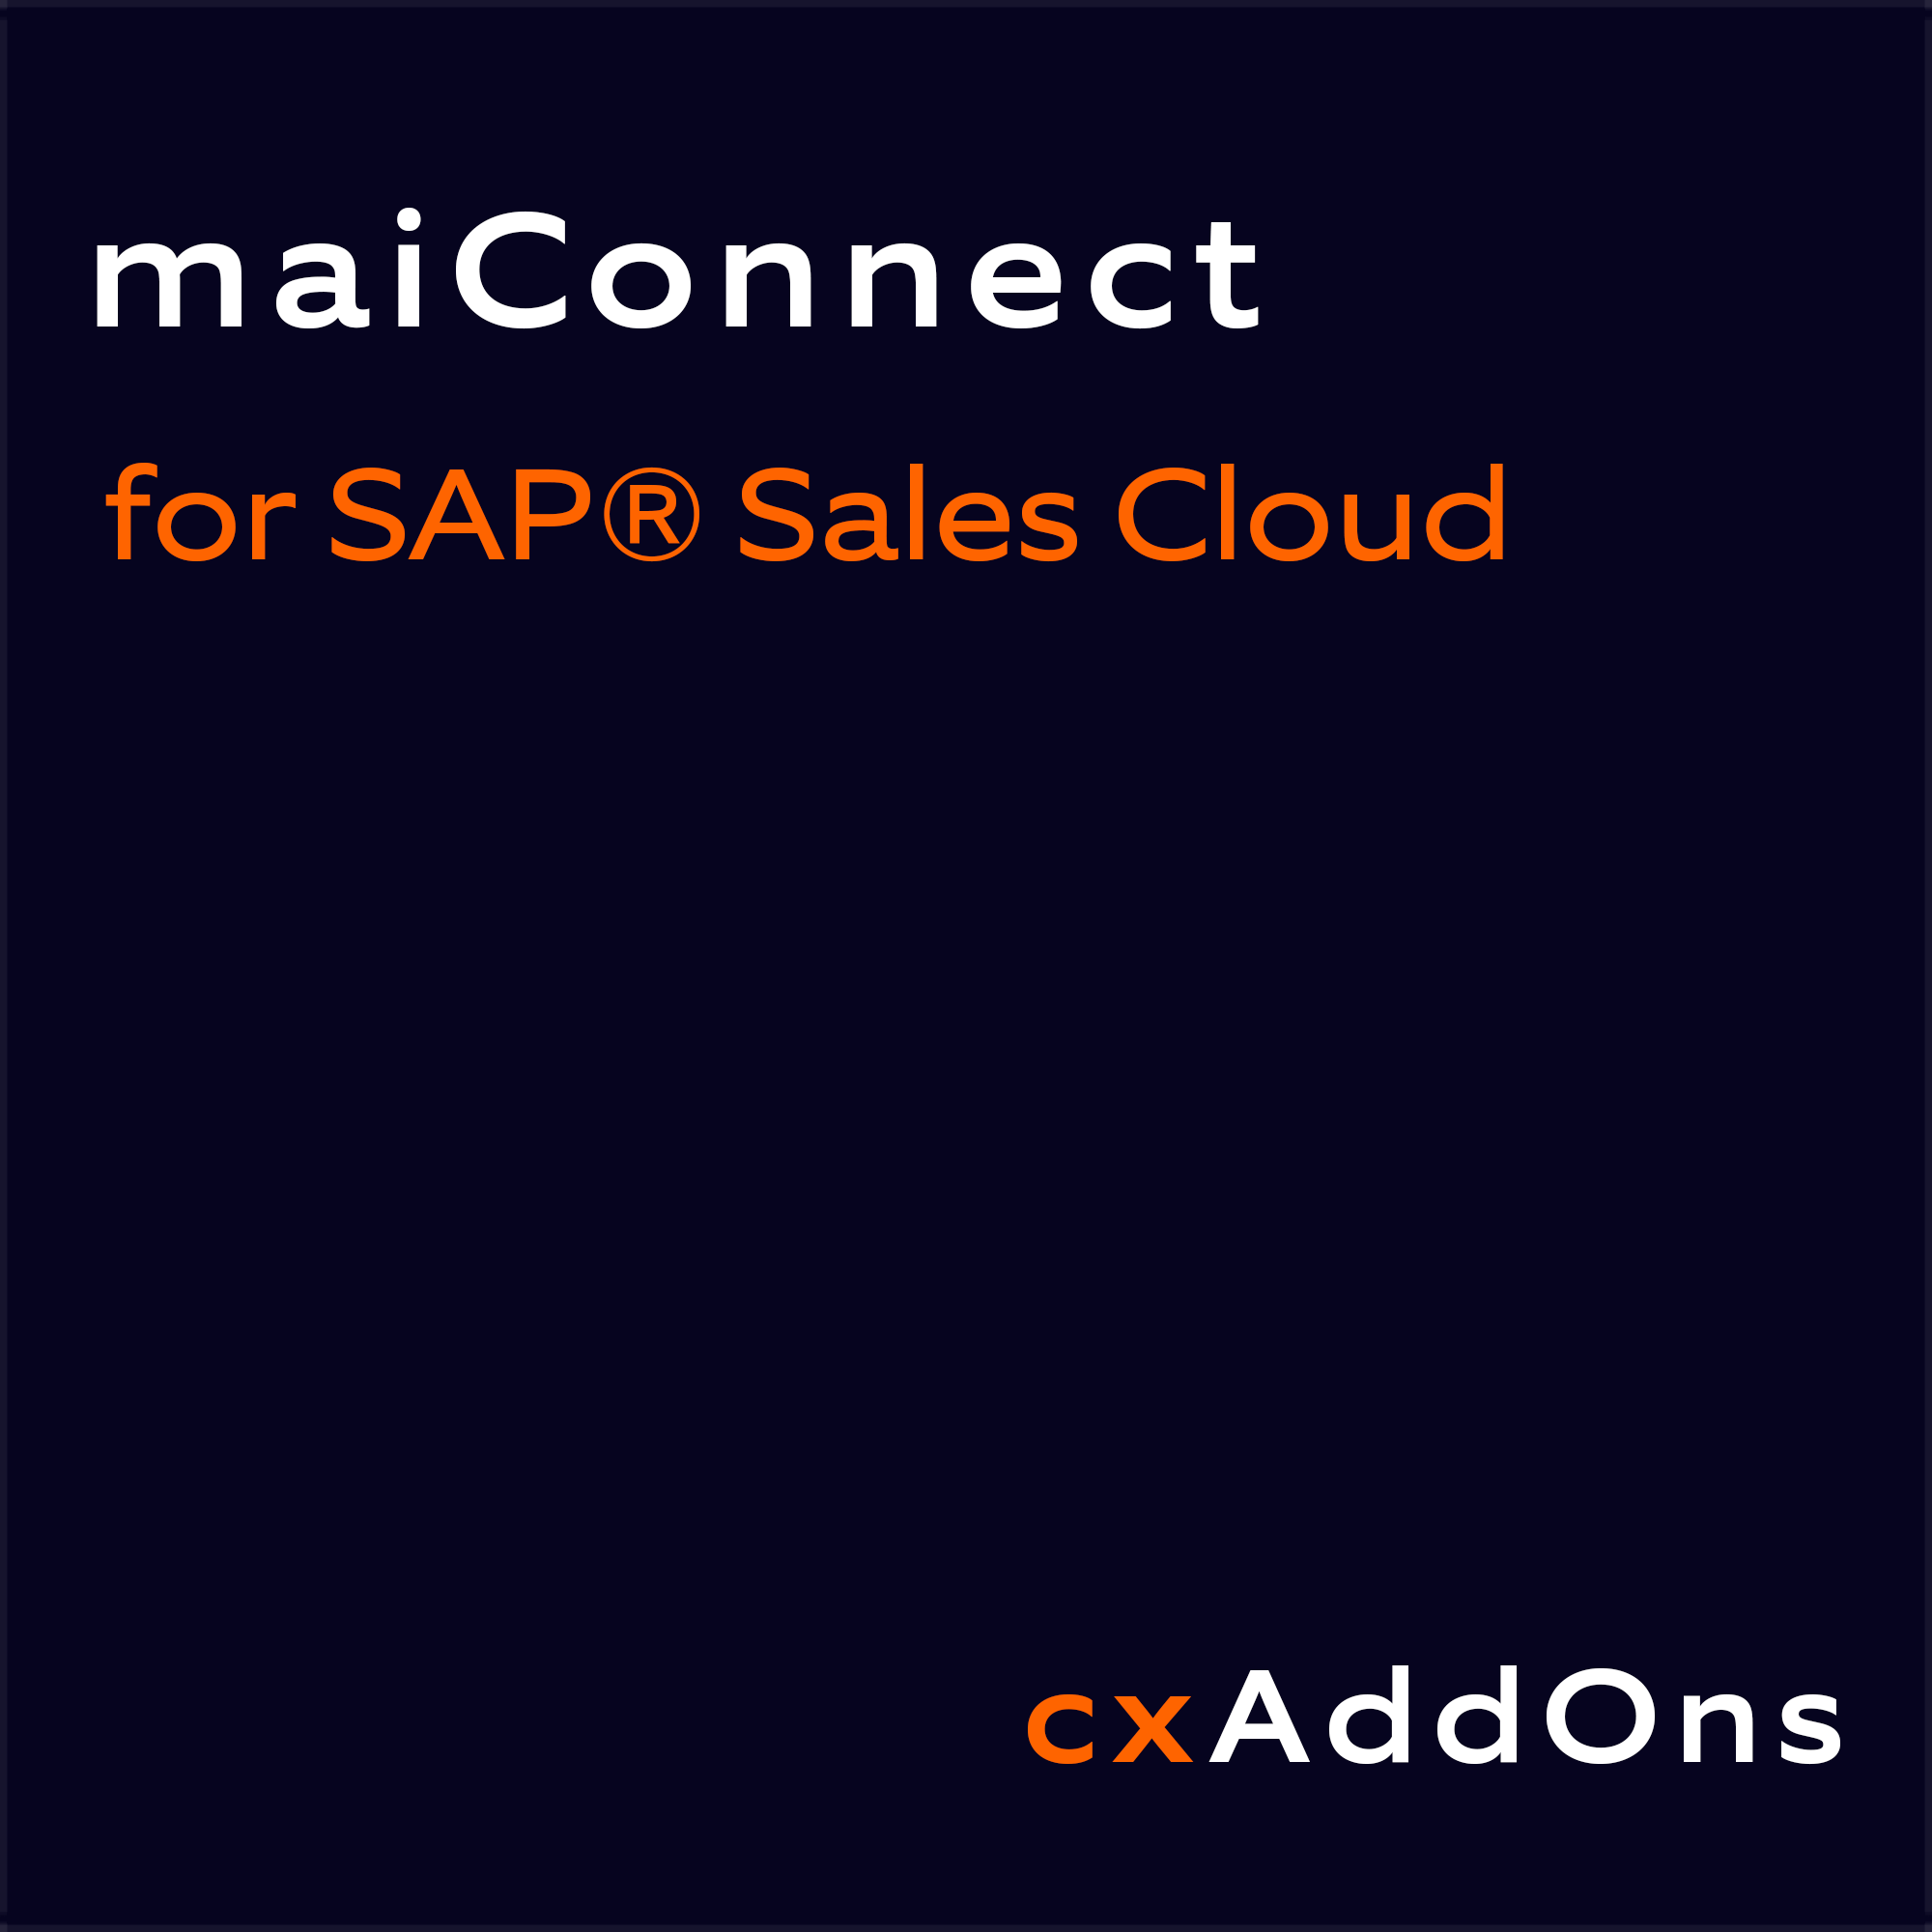 Nagarro ES maiConnect for SAP Sales Cloud Logo